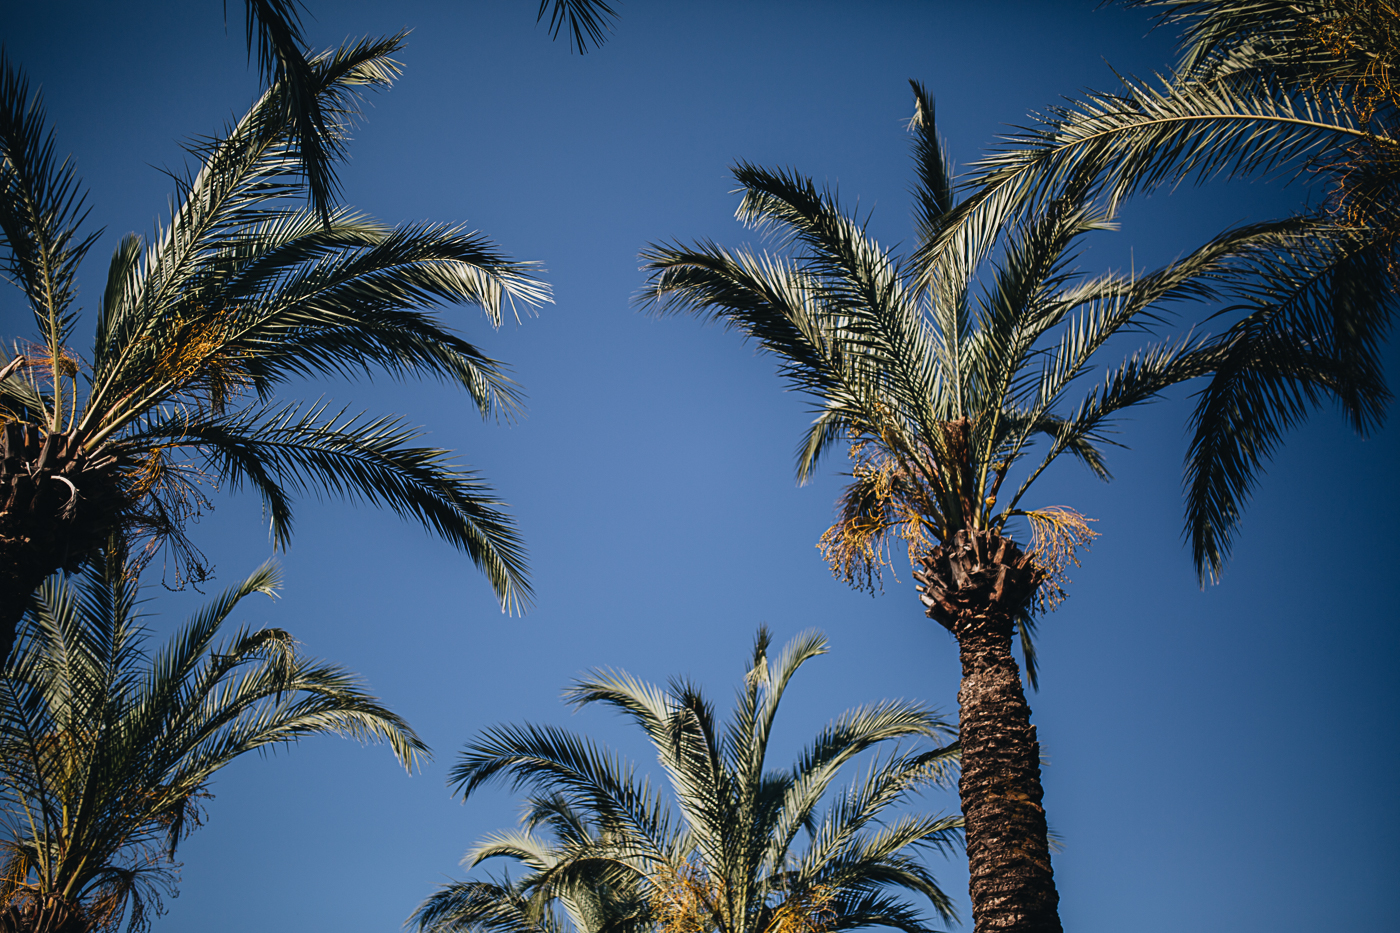 Summer holidays among the palms